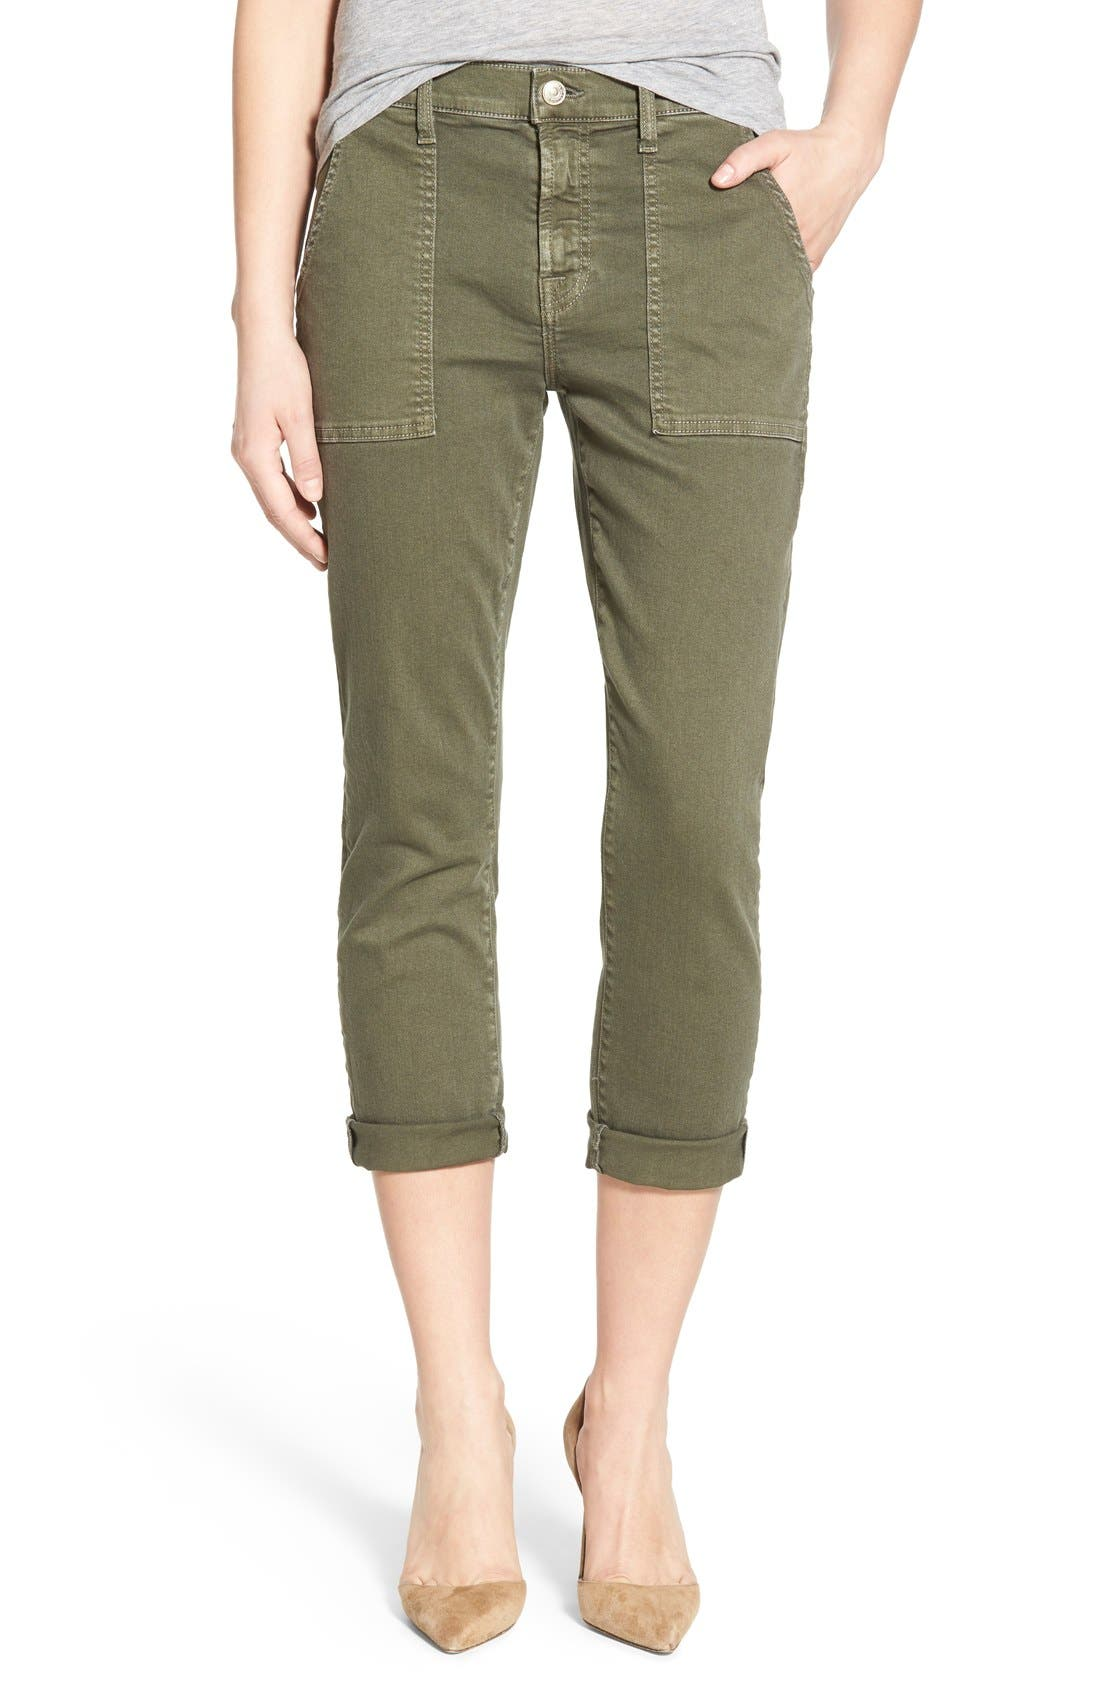 Alternate Image 1 Selected - 7 For All Mankind® Crop Slim Boyfriend Military Pants